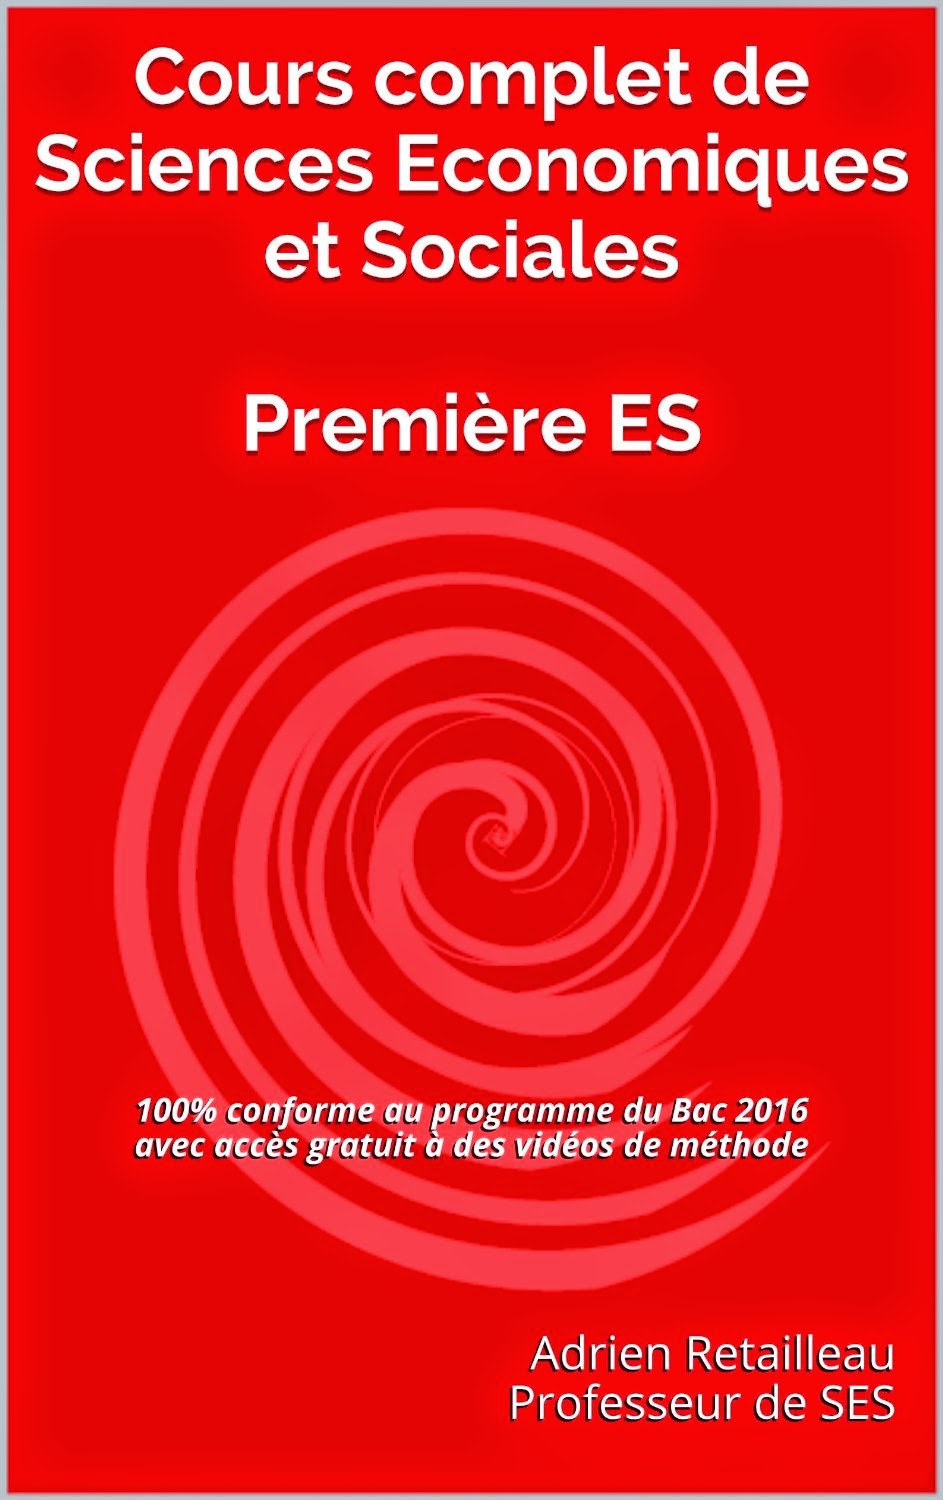 http://www.amazon.fr/complet-Sciences-Economiques-Sociales-Premi%C3%A8re-ebook/dp/B00W7XV93A/ref=sr_1_1?s=books&ie=UTF8&qid=1429252947&sr=1-1&keywords=Adrien+Retailleau